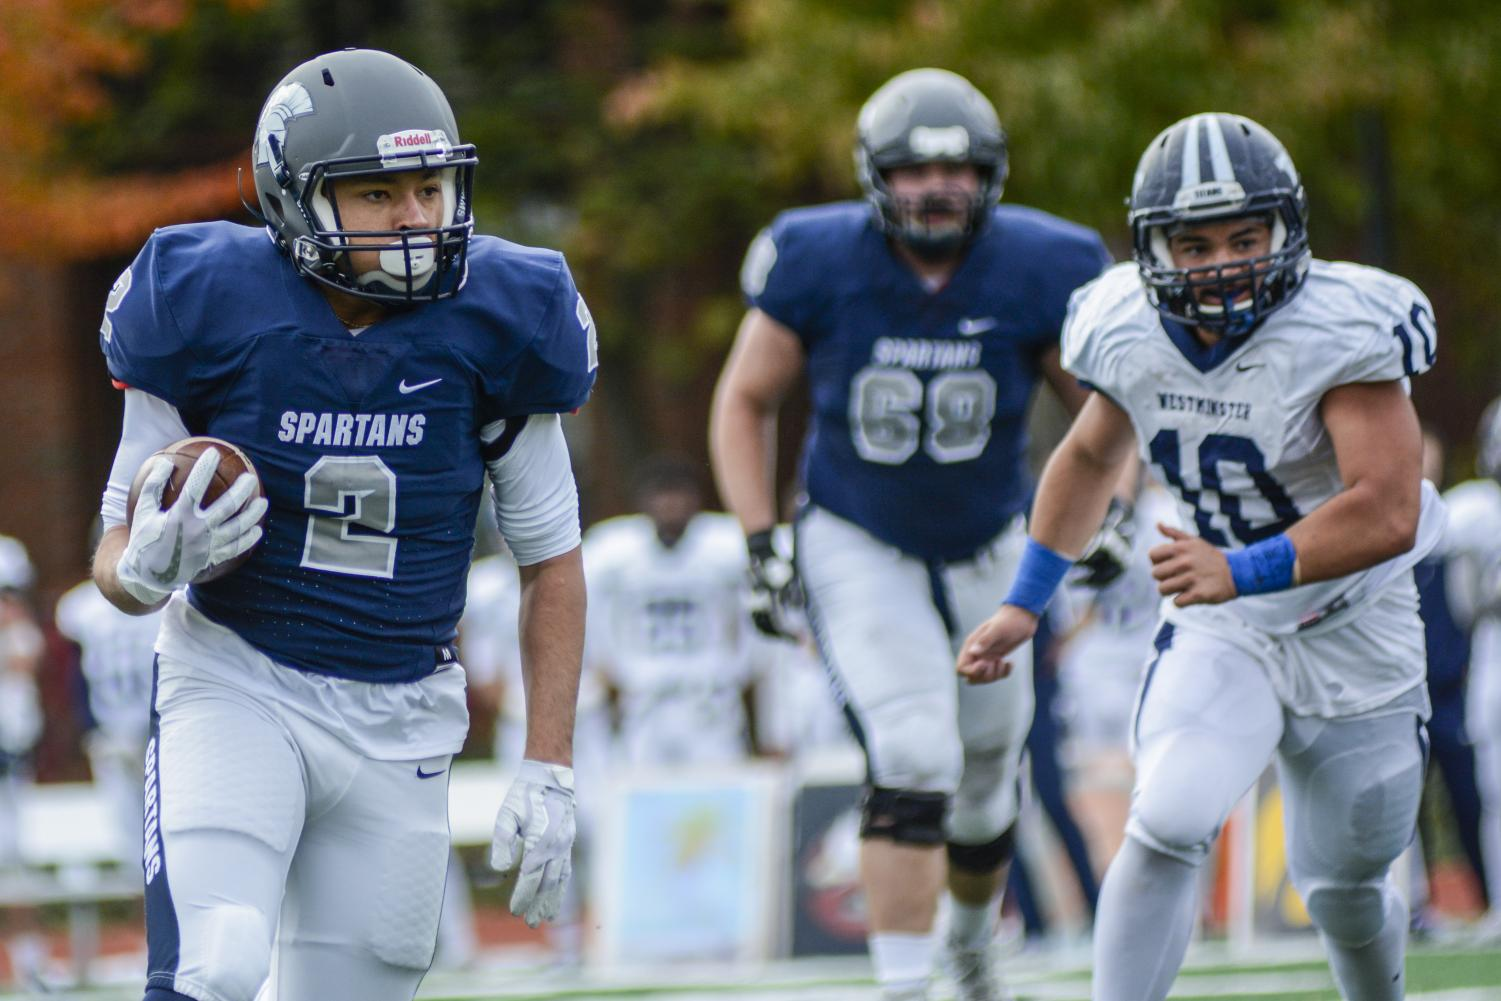 Following an exciting overtime victory in its final game, CWRU is rushing into the NCAA playoffs.